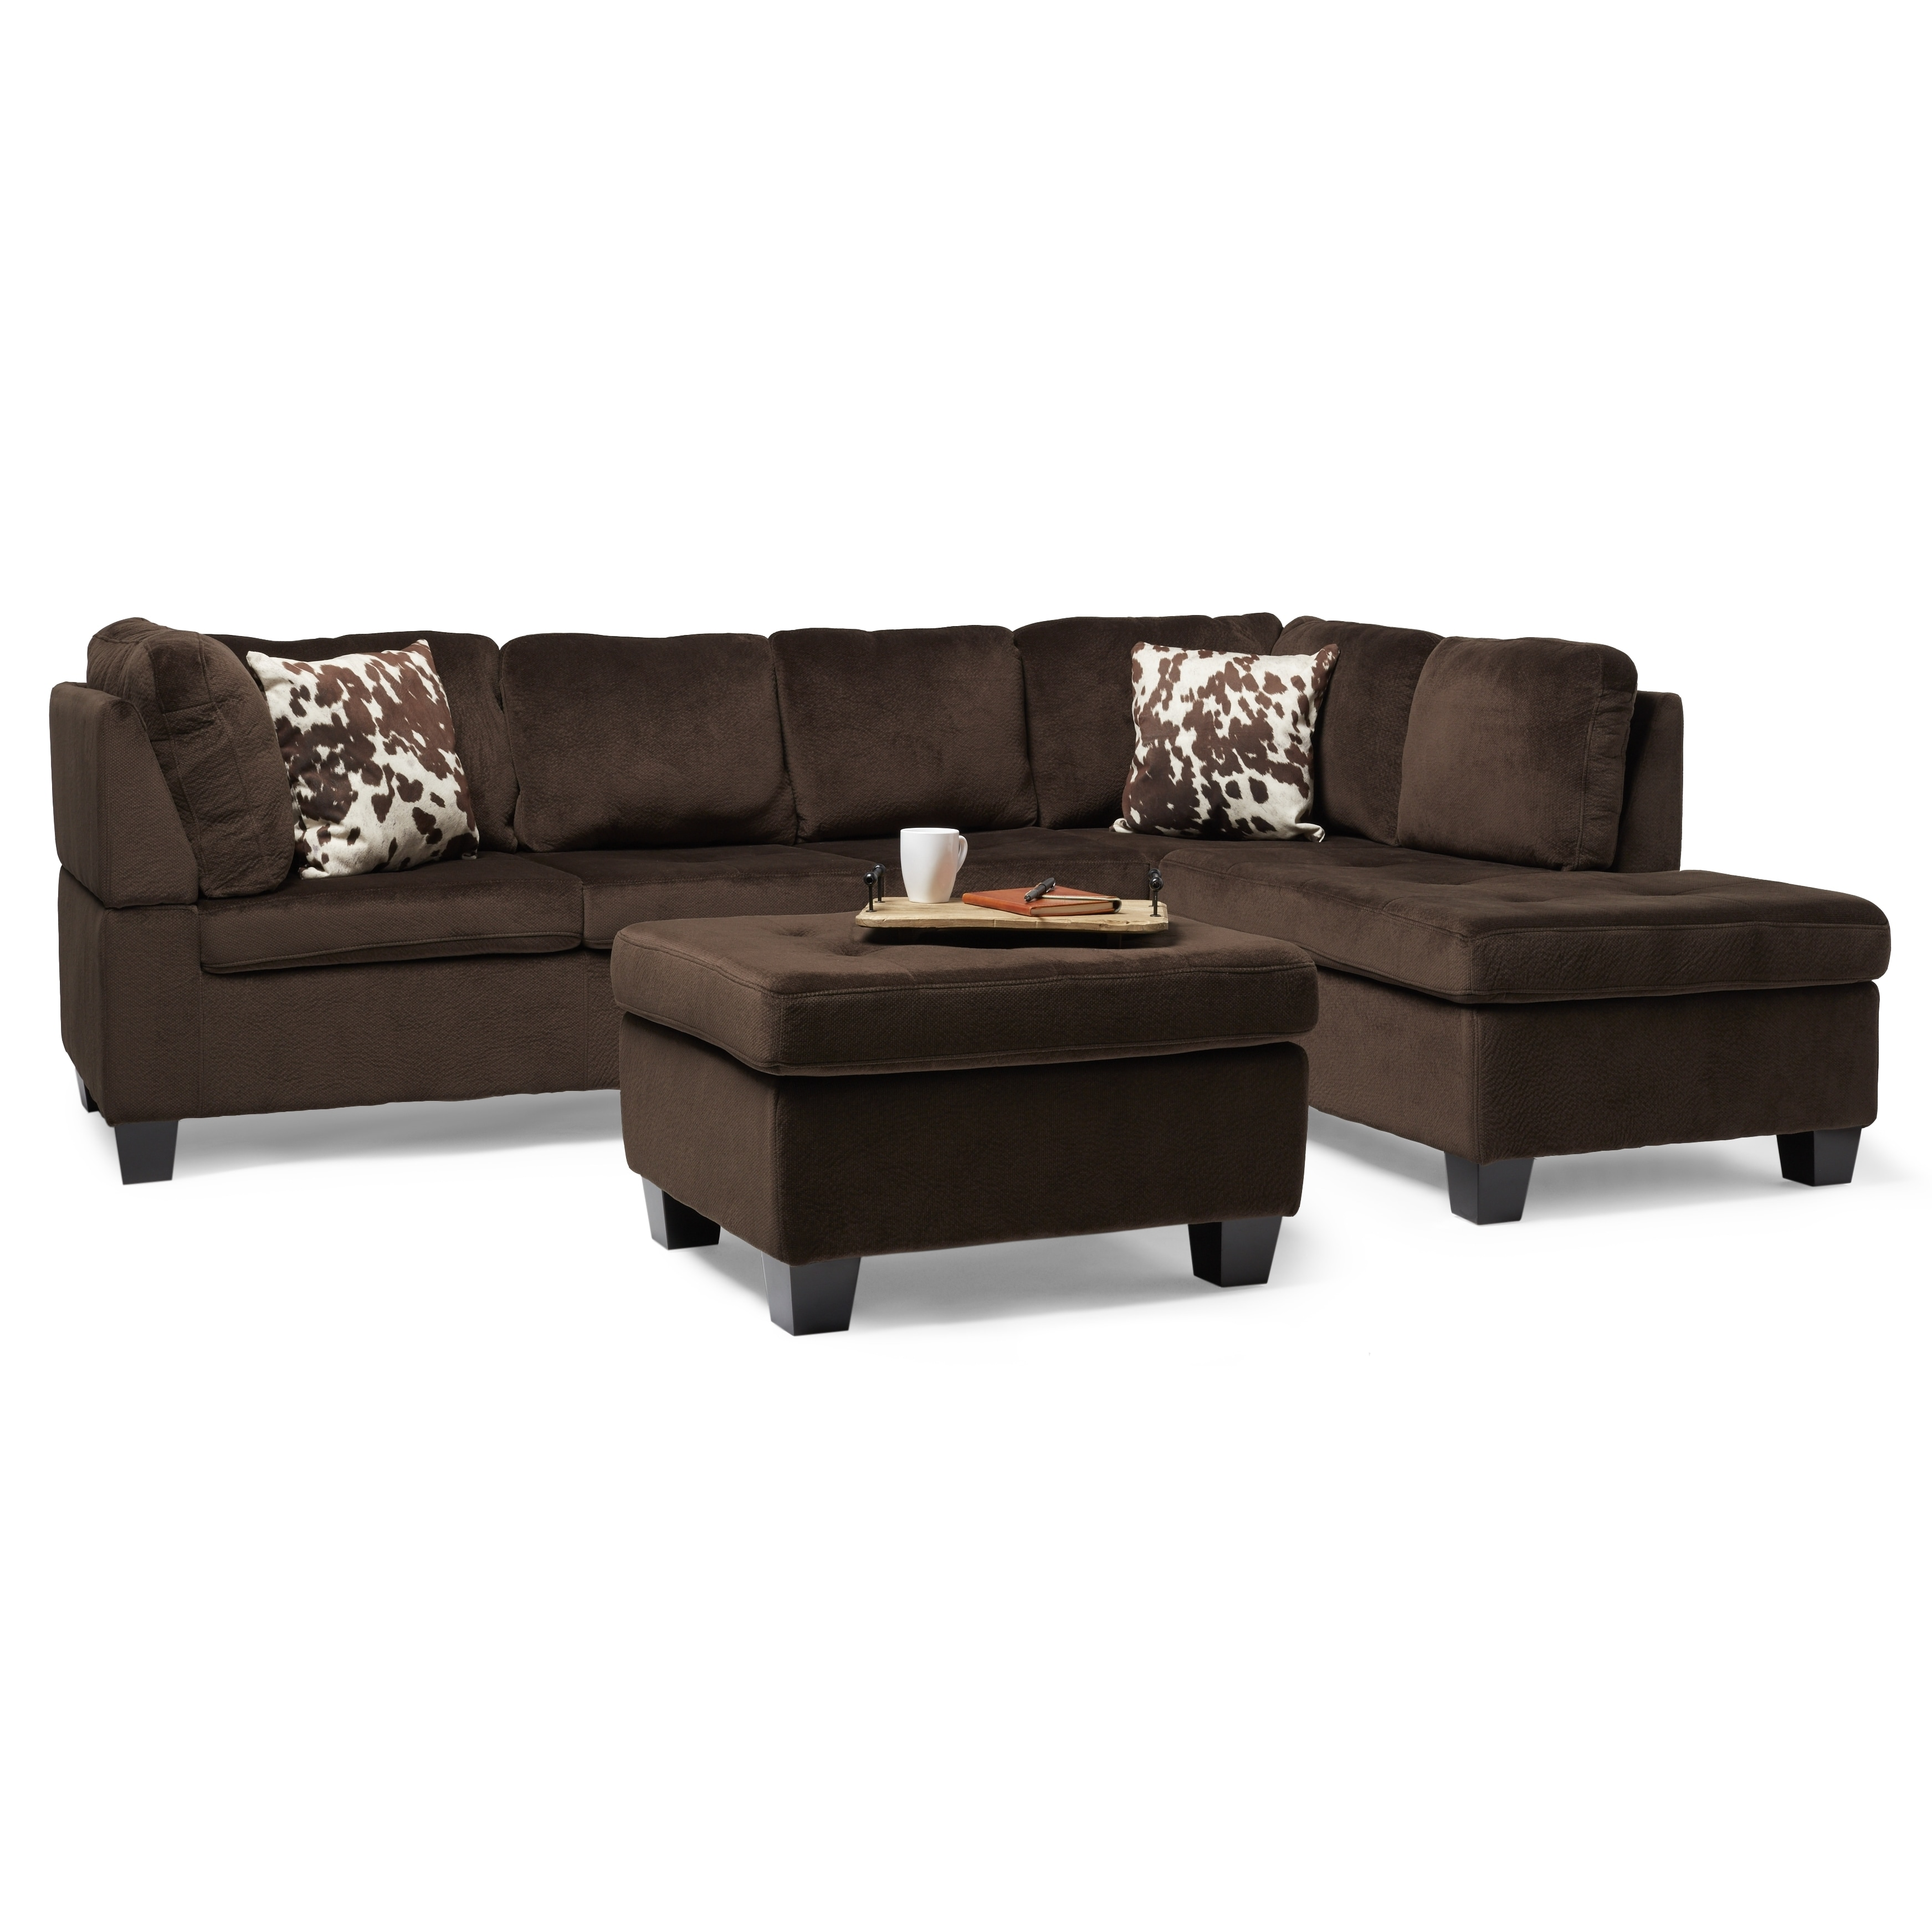 Canterbury 3 Piece Fabric Sectional Sofa Set By Christopher Knight Home On Free Shipping Today 10814121